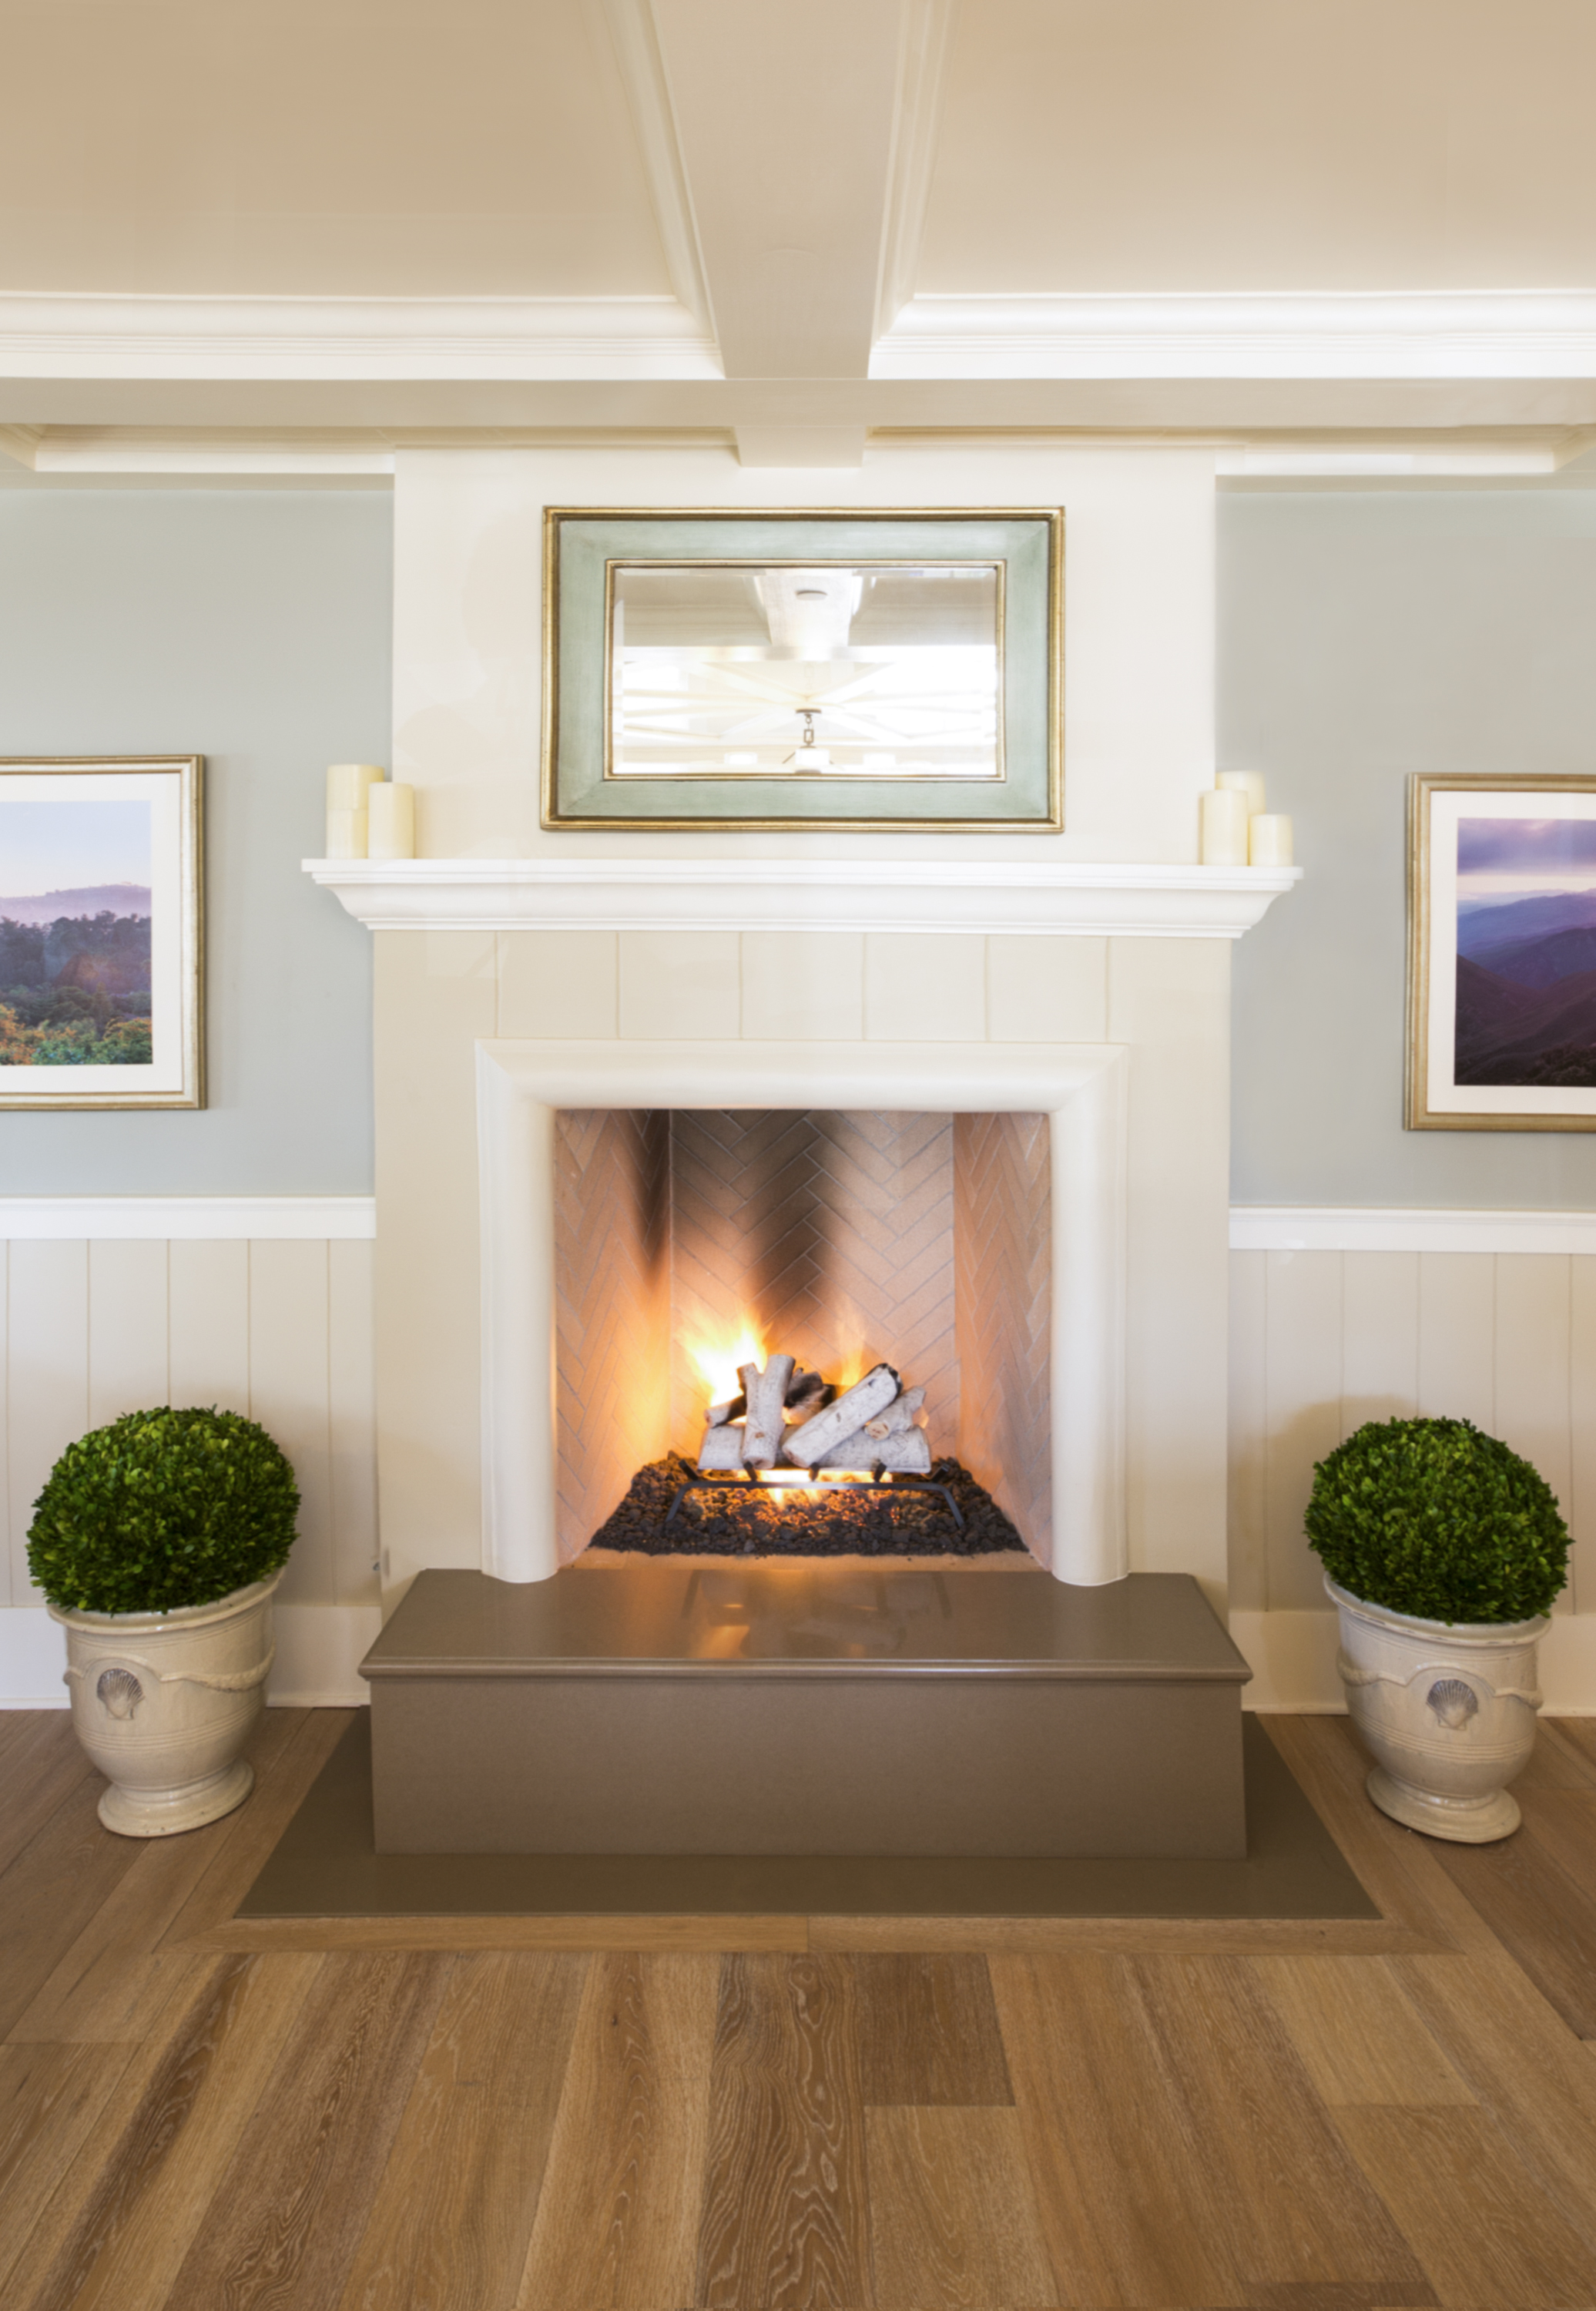 THE AMERICAN RIVIERA BANK - FIREPLACE